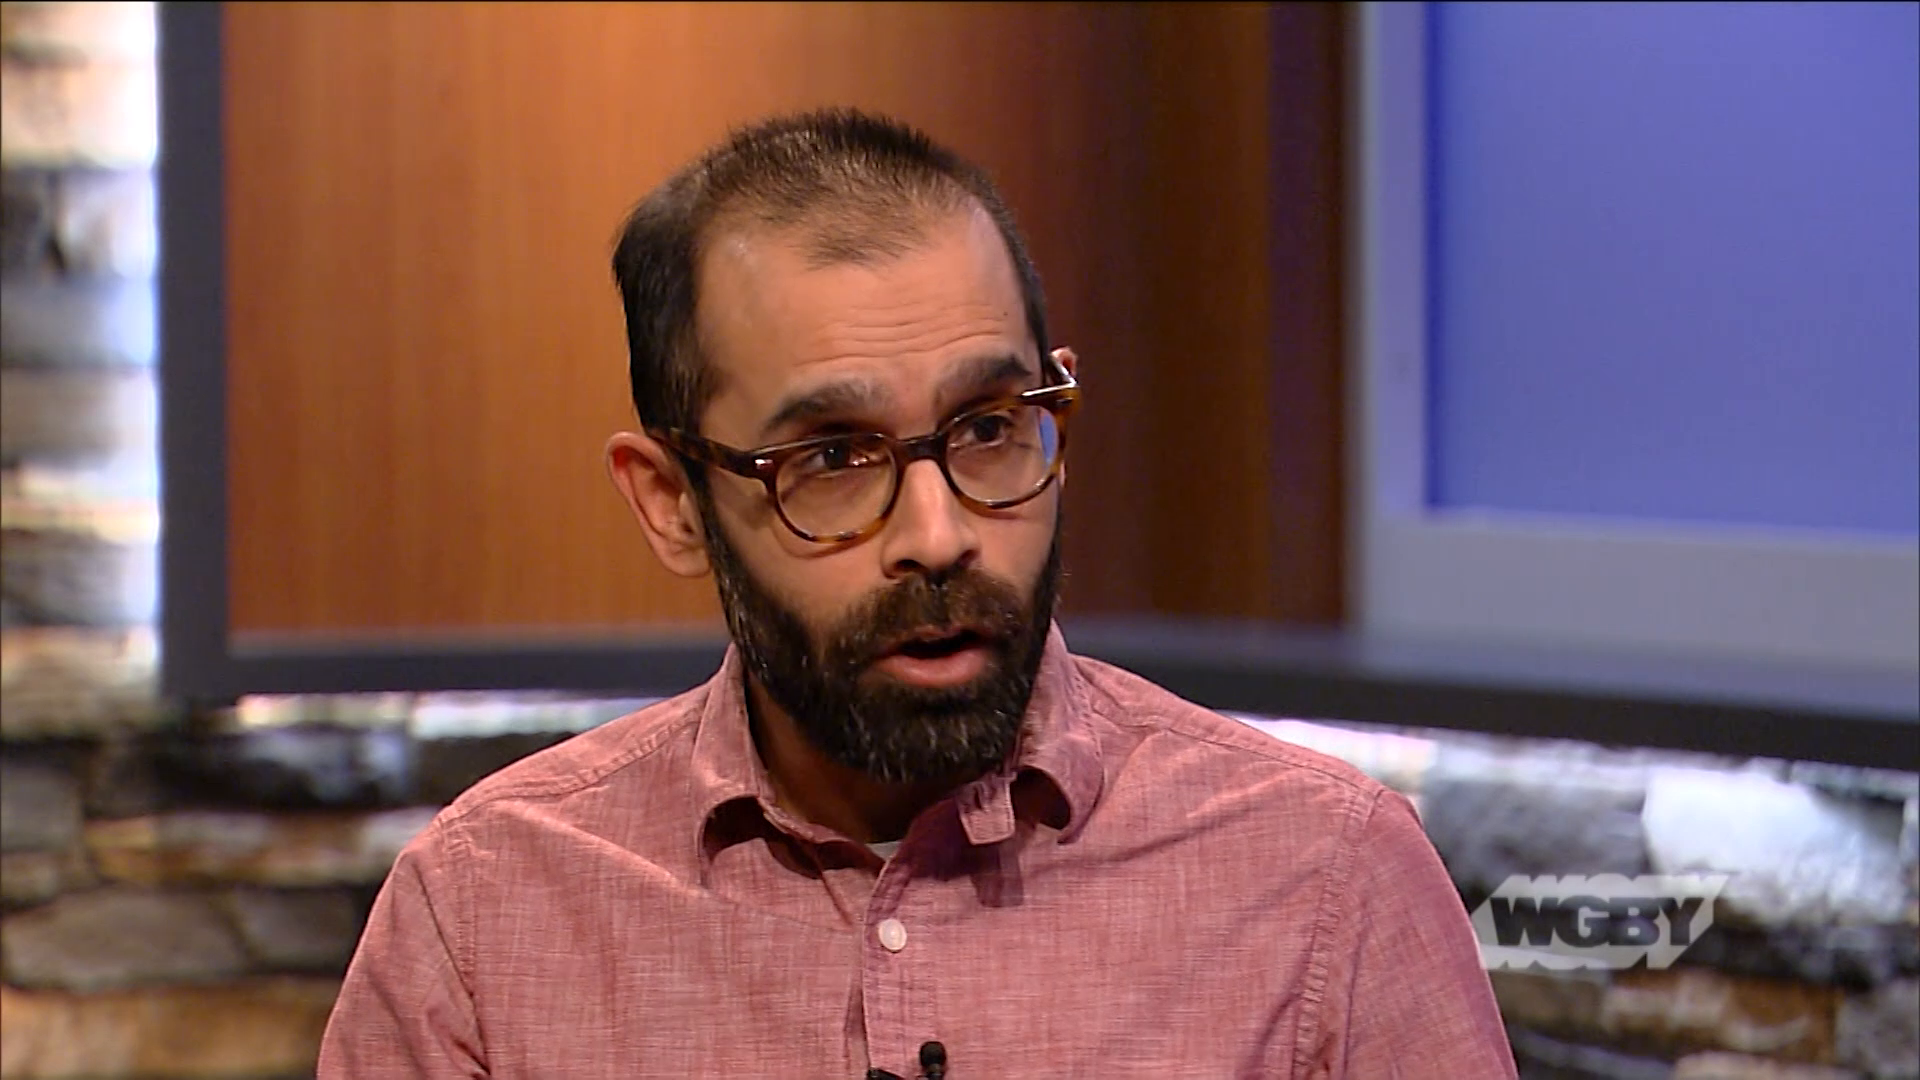 Mt. Holyoke College Prof. Ali Aslam & Smith College Prof. Donald Baumer discuss Rep. Jim McGovern being named Chair of the US House Rules Committee.